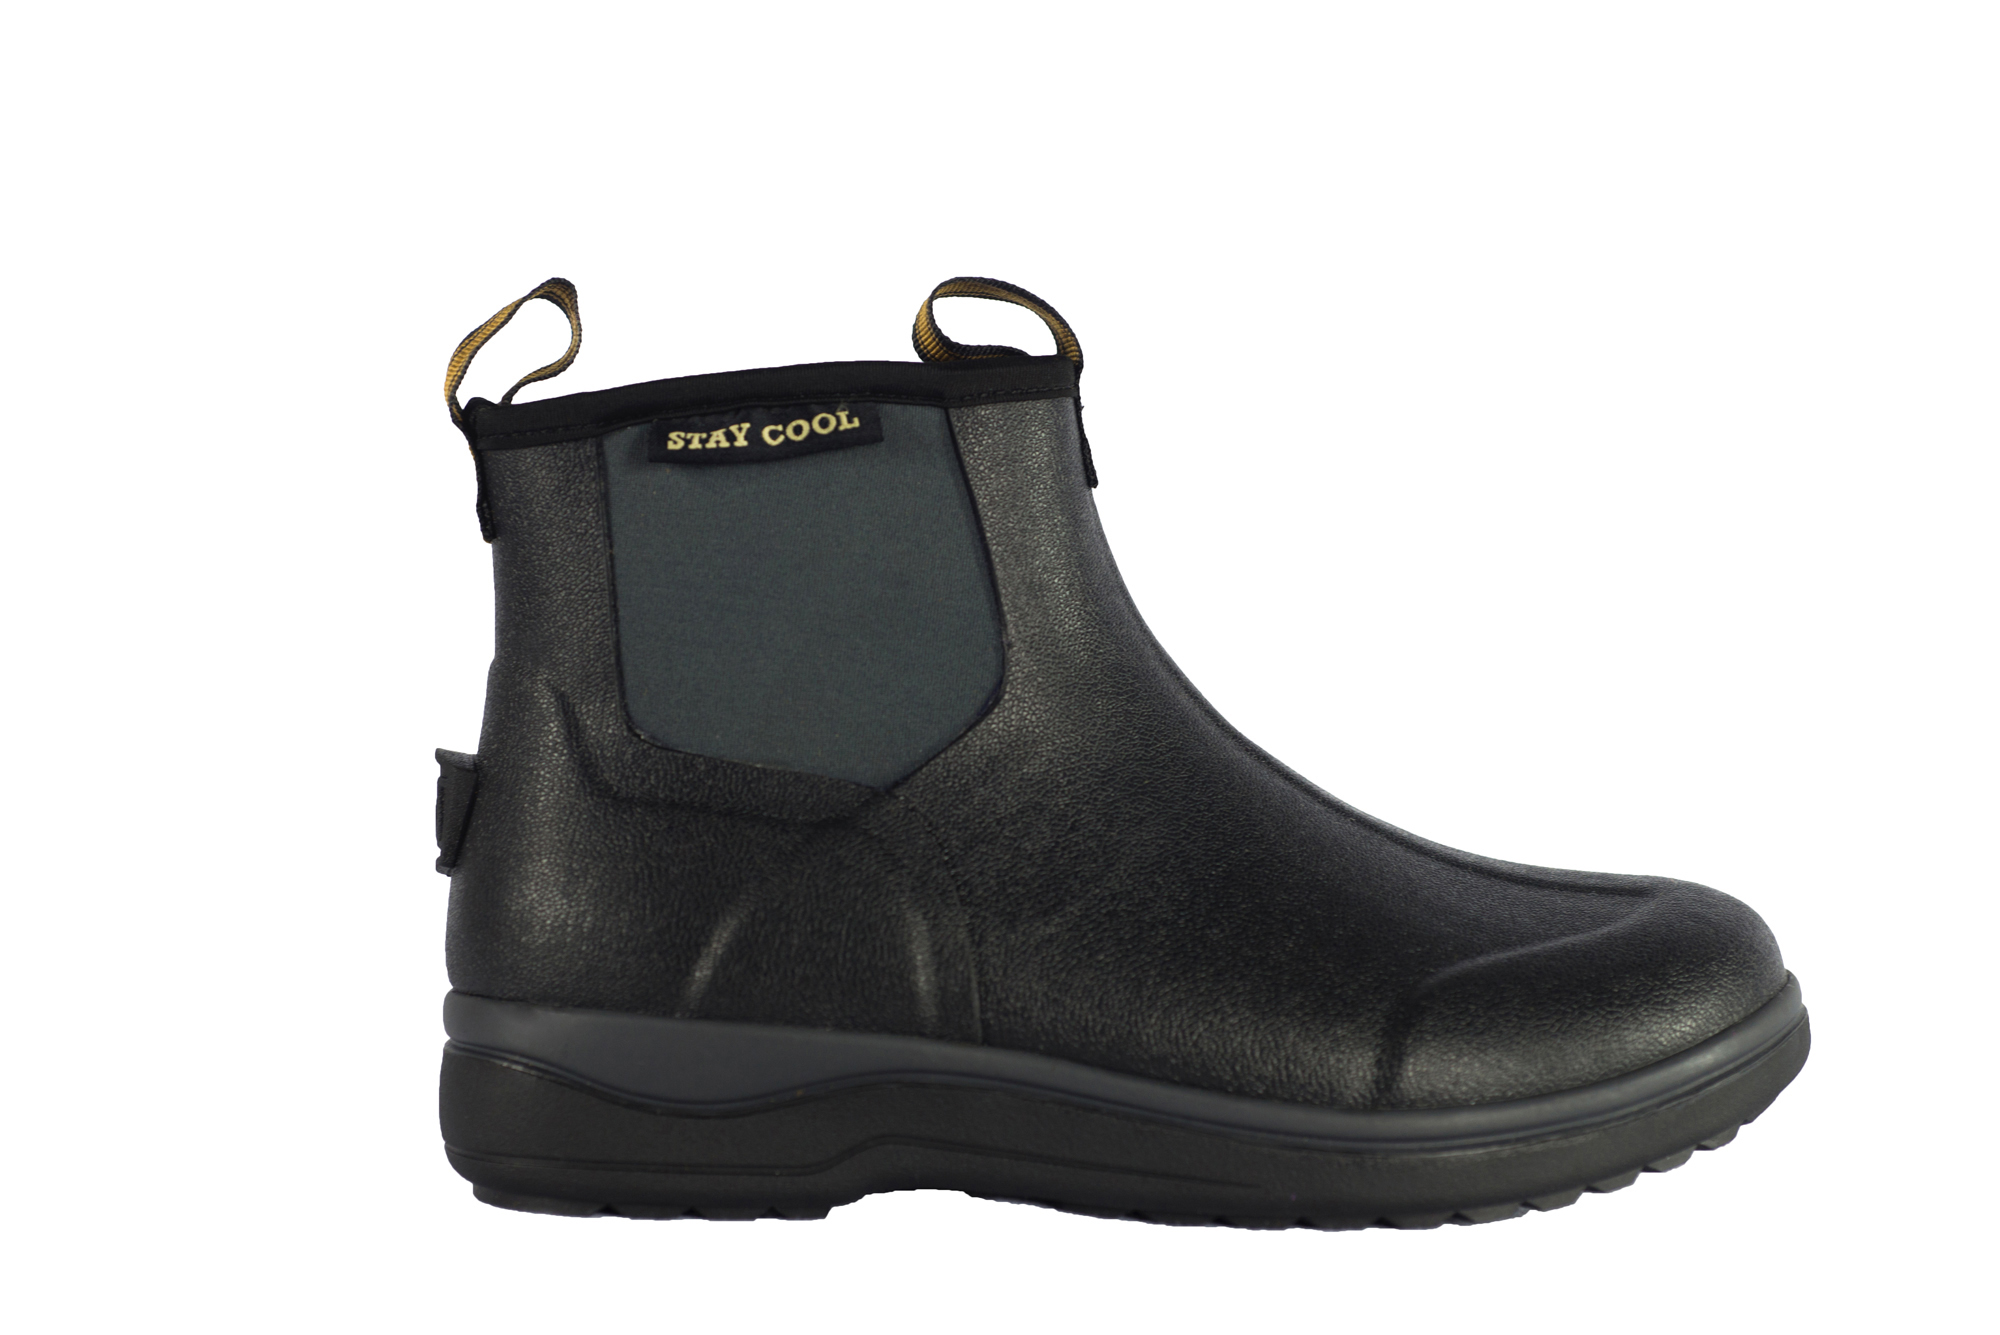 Noble Mujer Botas Impermeables lodos Stay in Cool 6 in Stay (approx. 15.24 cm) - Negro 0a2531